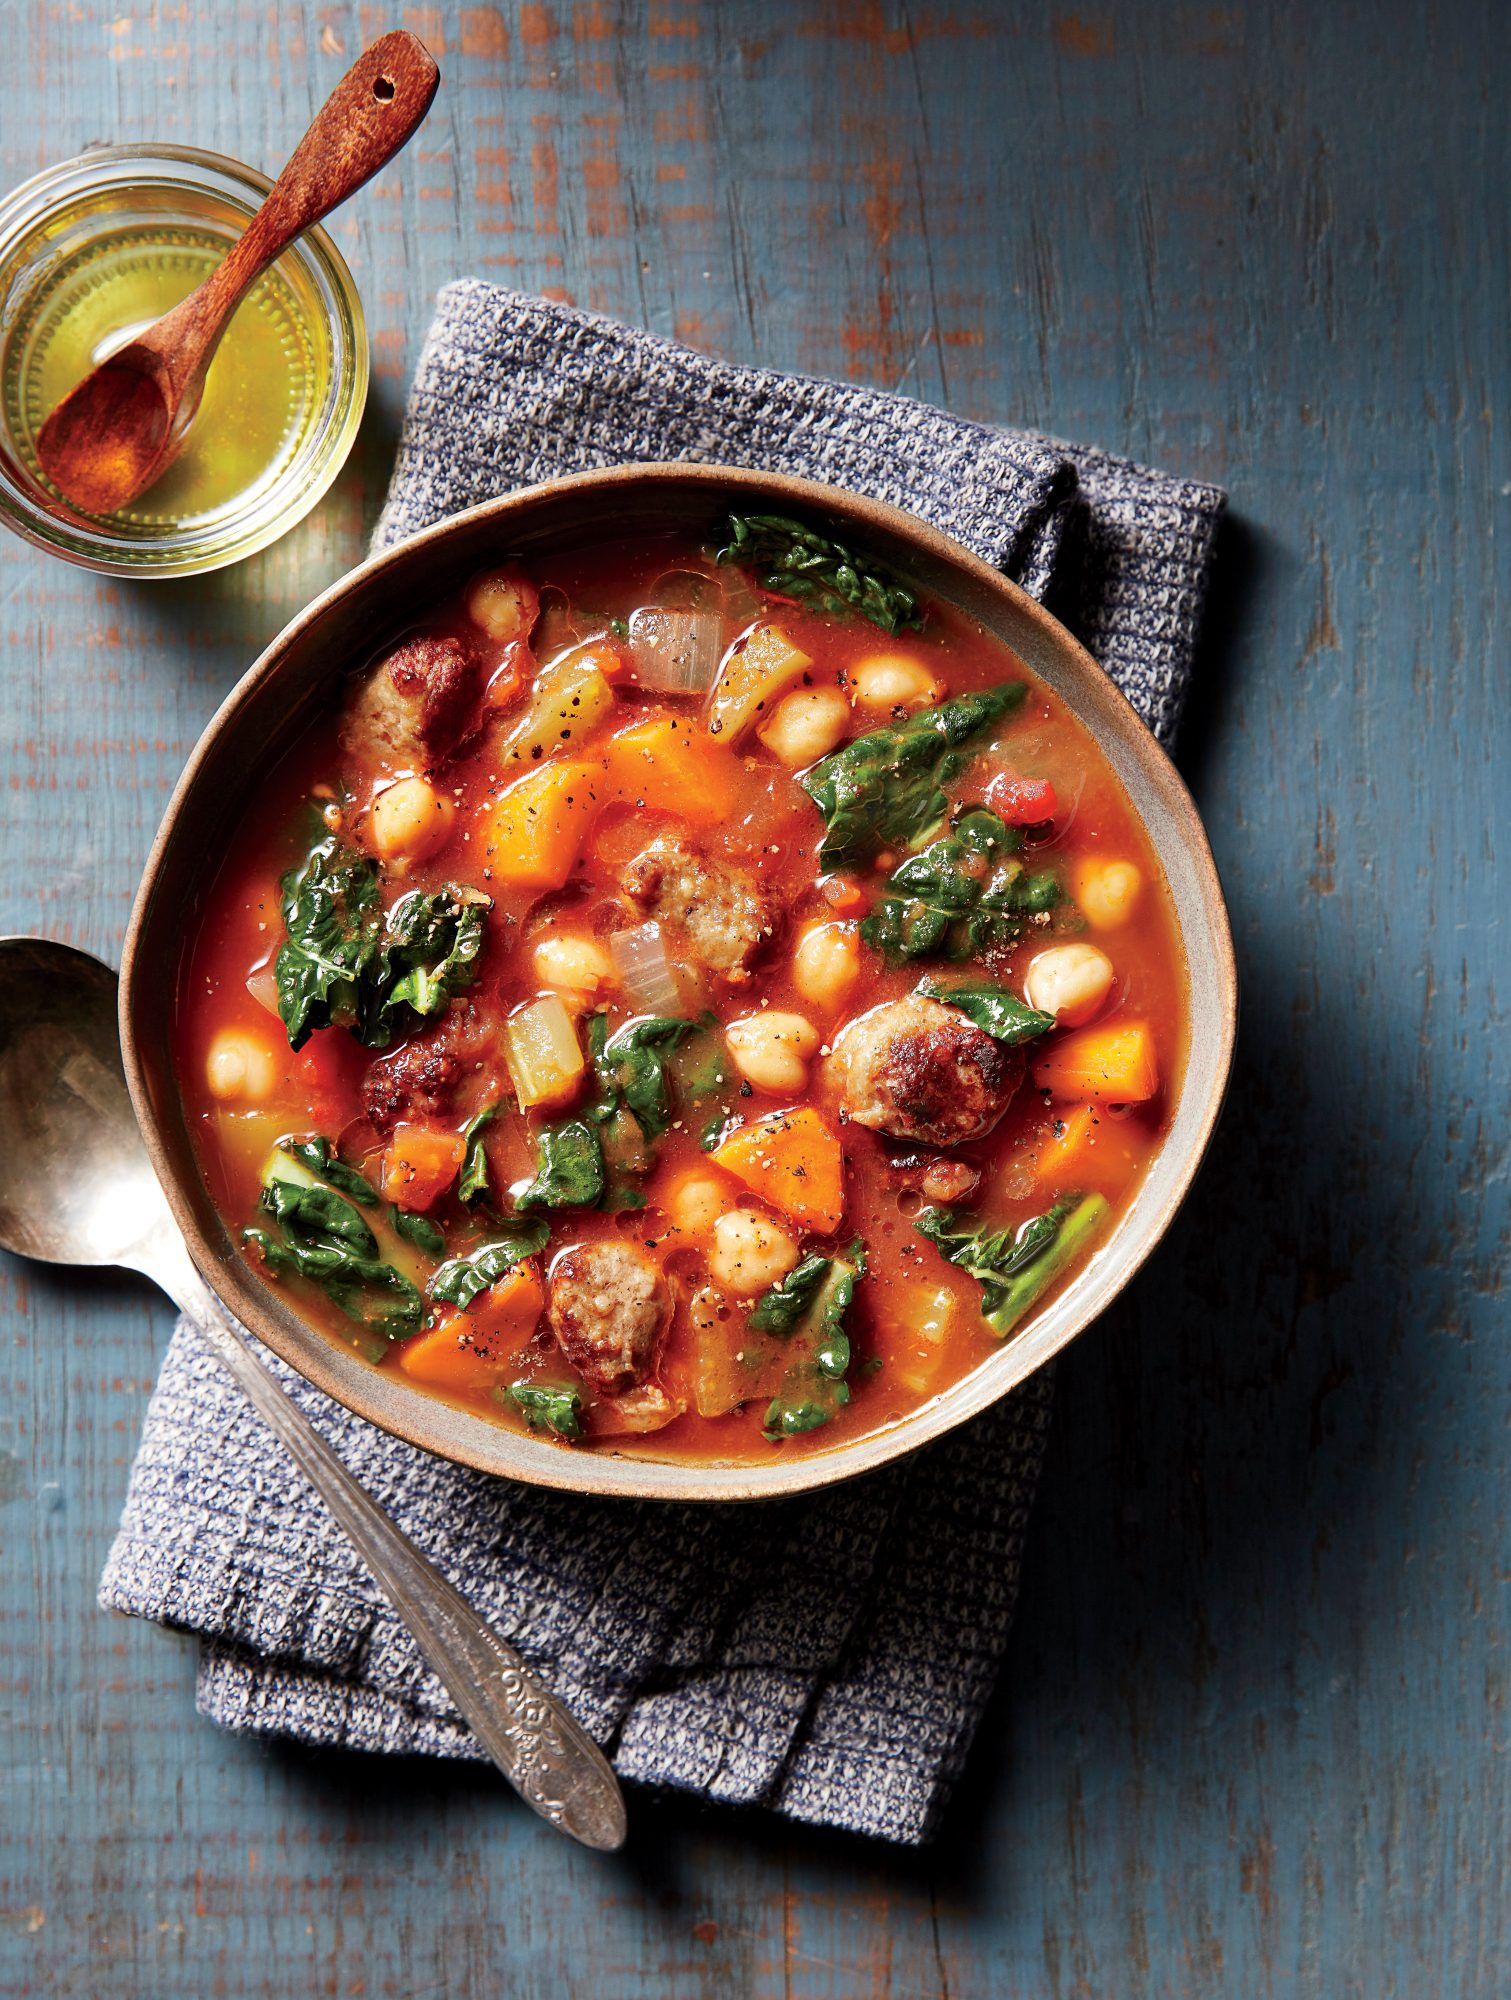 Spicy Sausage-and-Chickpea Soup with Garlic Oil